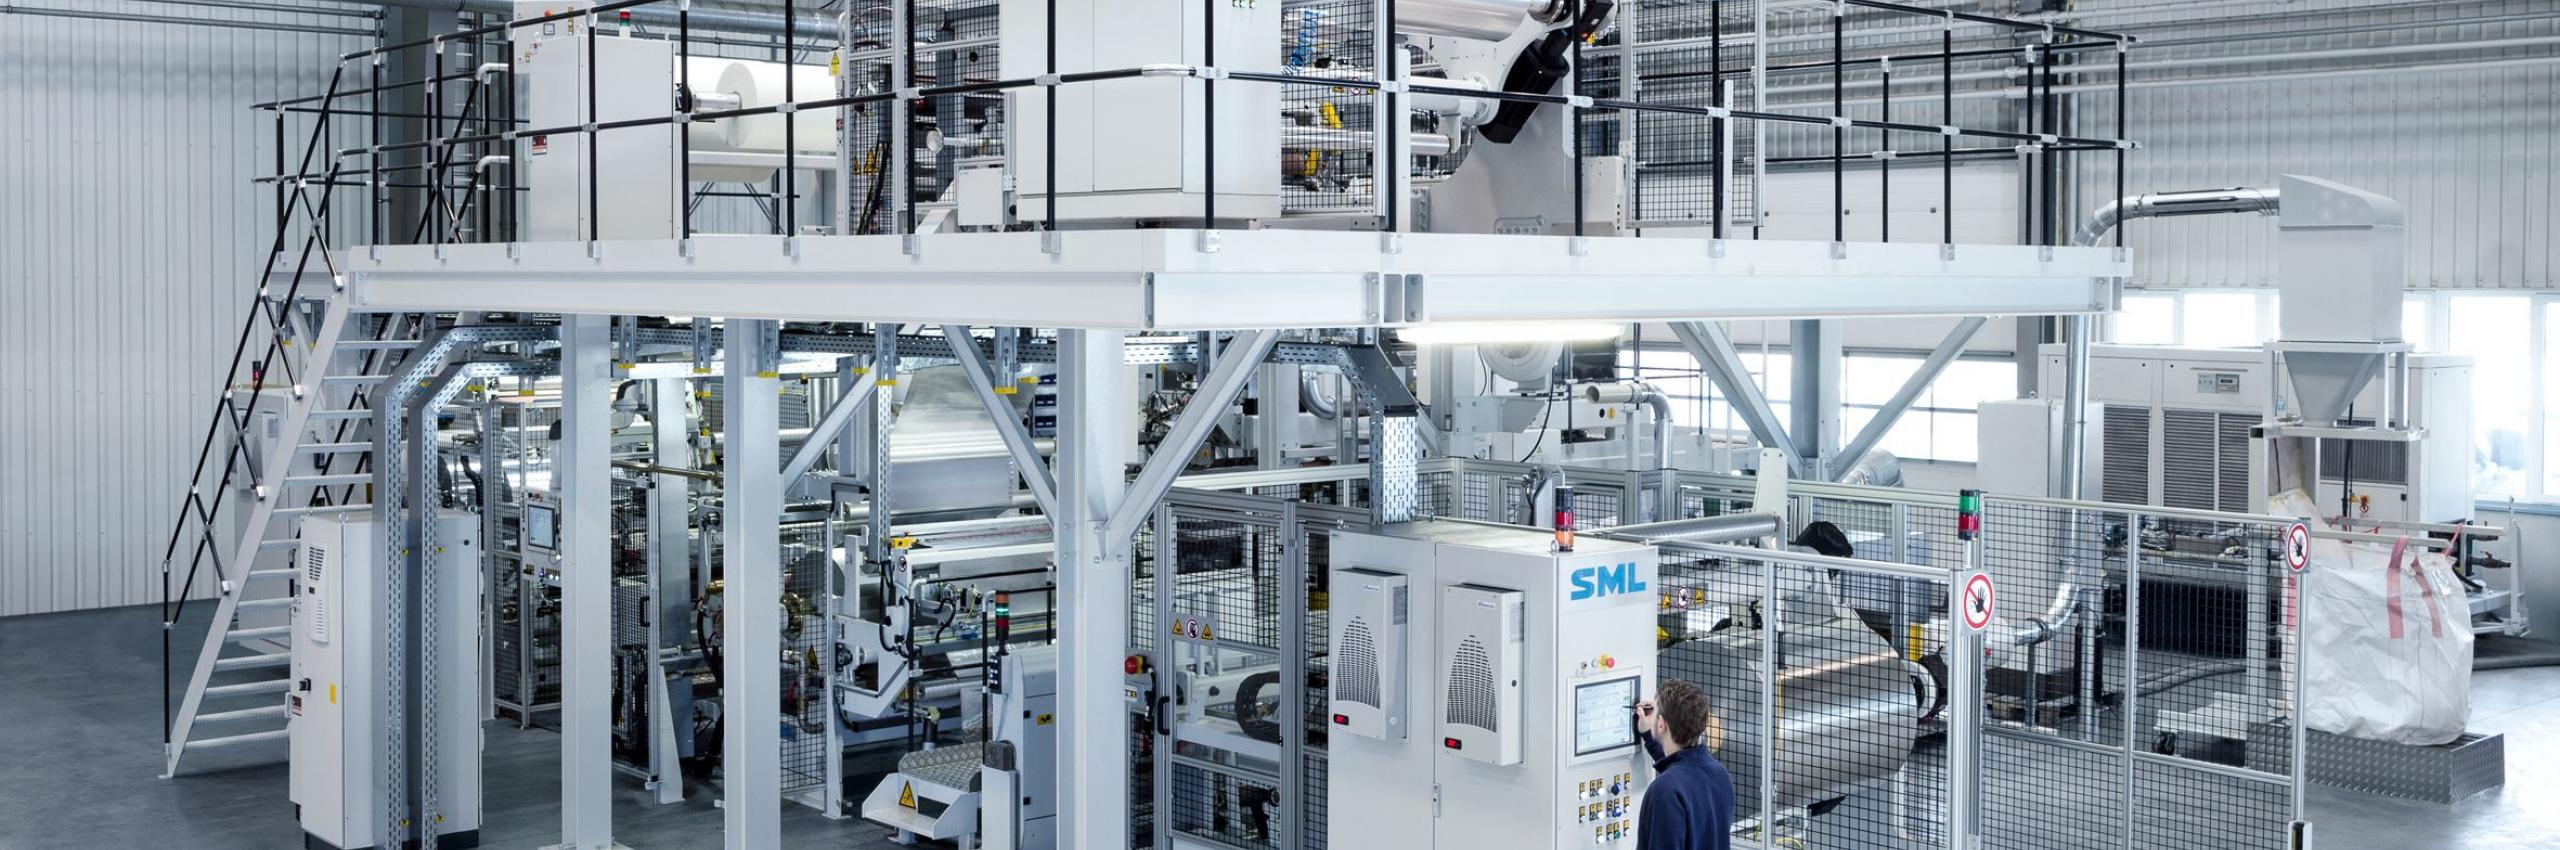 SML FlexPack extrusion coating and laminating line